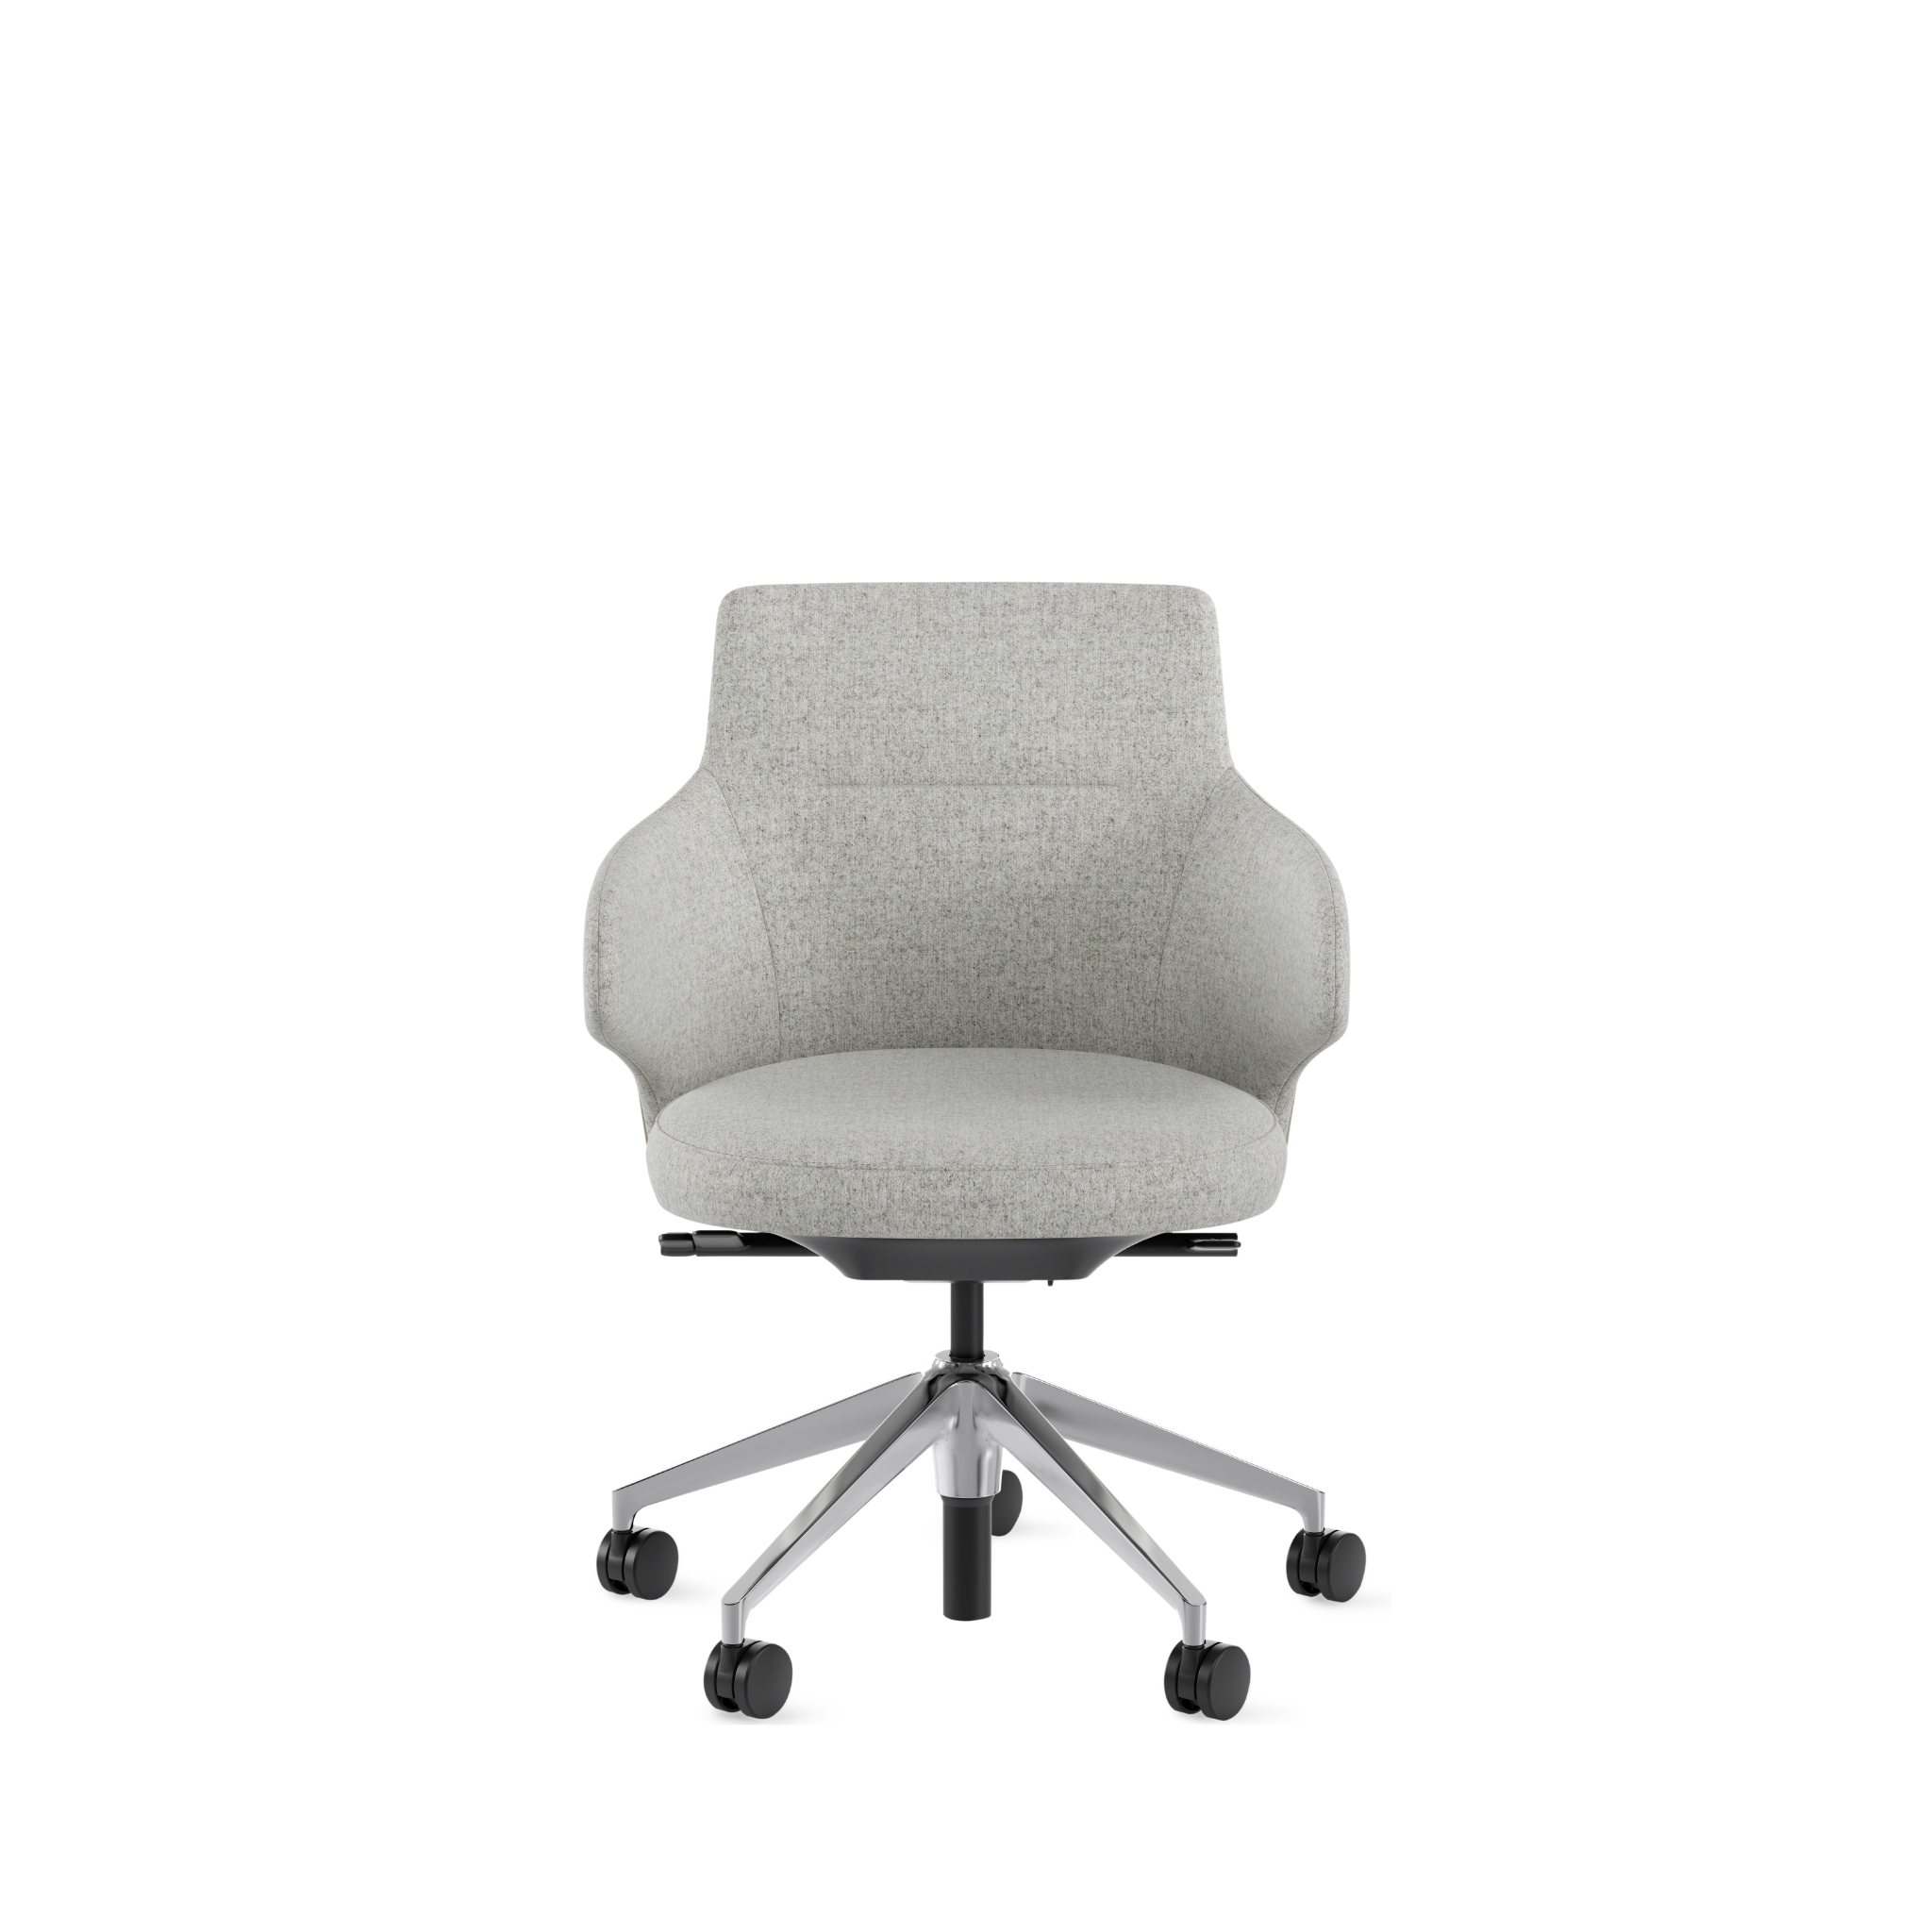 Plush grey conference chair with low armrests, mid-height back, and aluminum base with casters